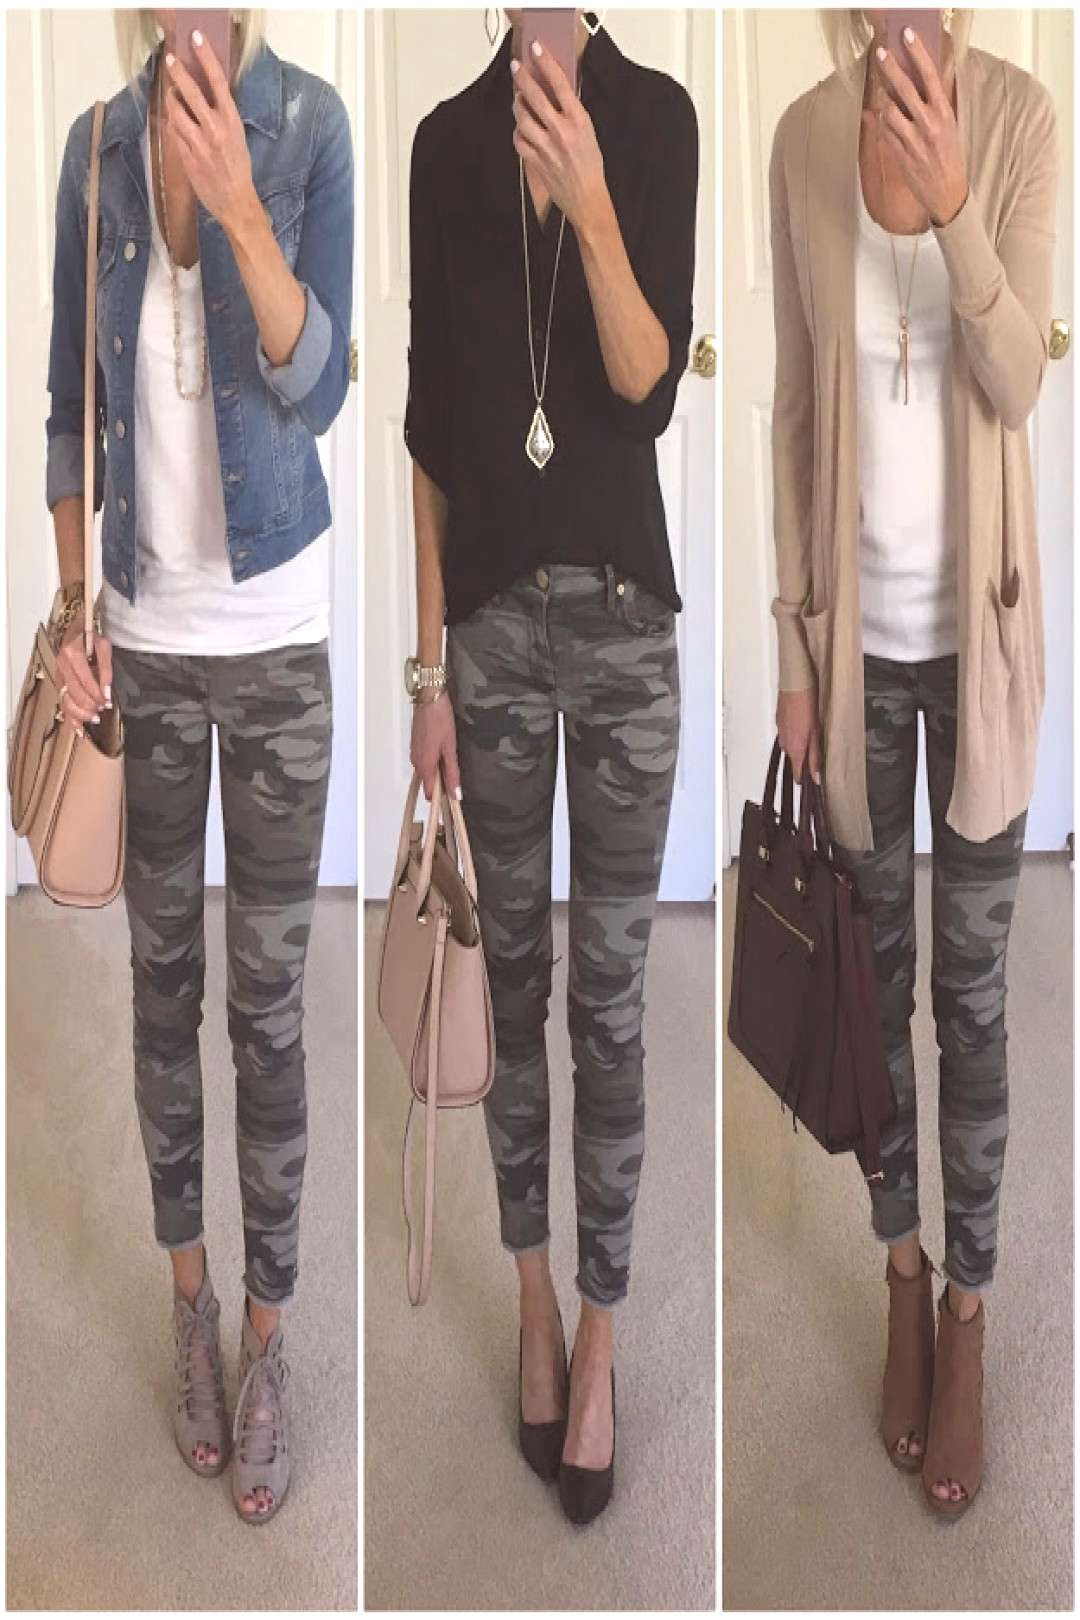 Camo Jeans Outfit Ideas,Camo Jeans Outfit Ideas | On the Daily EXPRESS Girls who reach a part... Ca